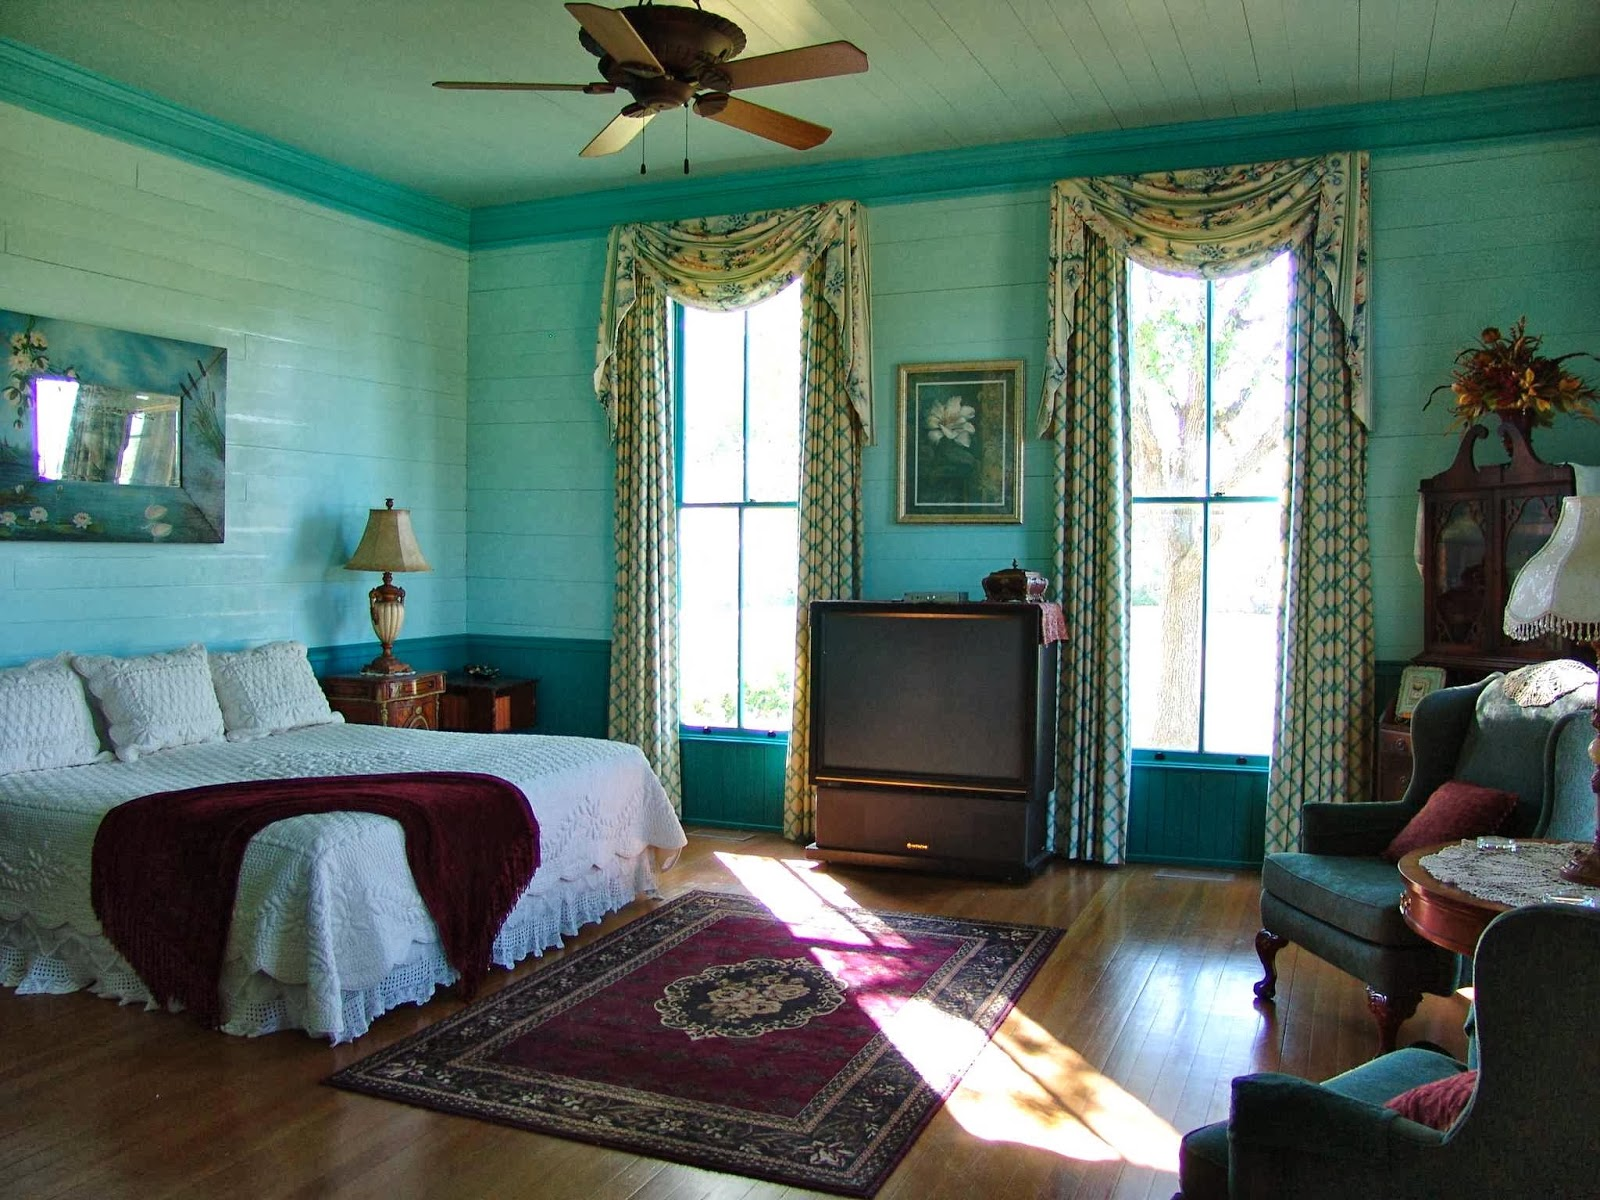 Belle Of Round Top Bed And Breakfast